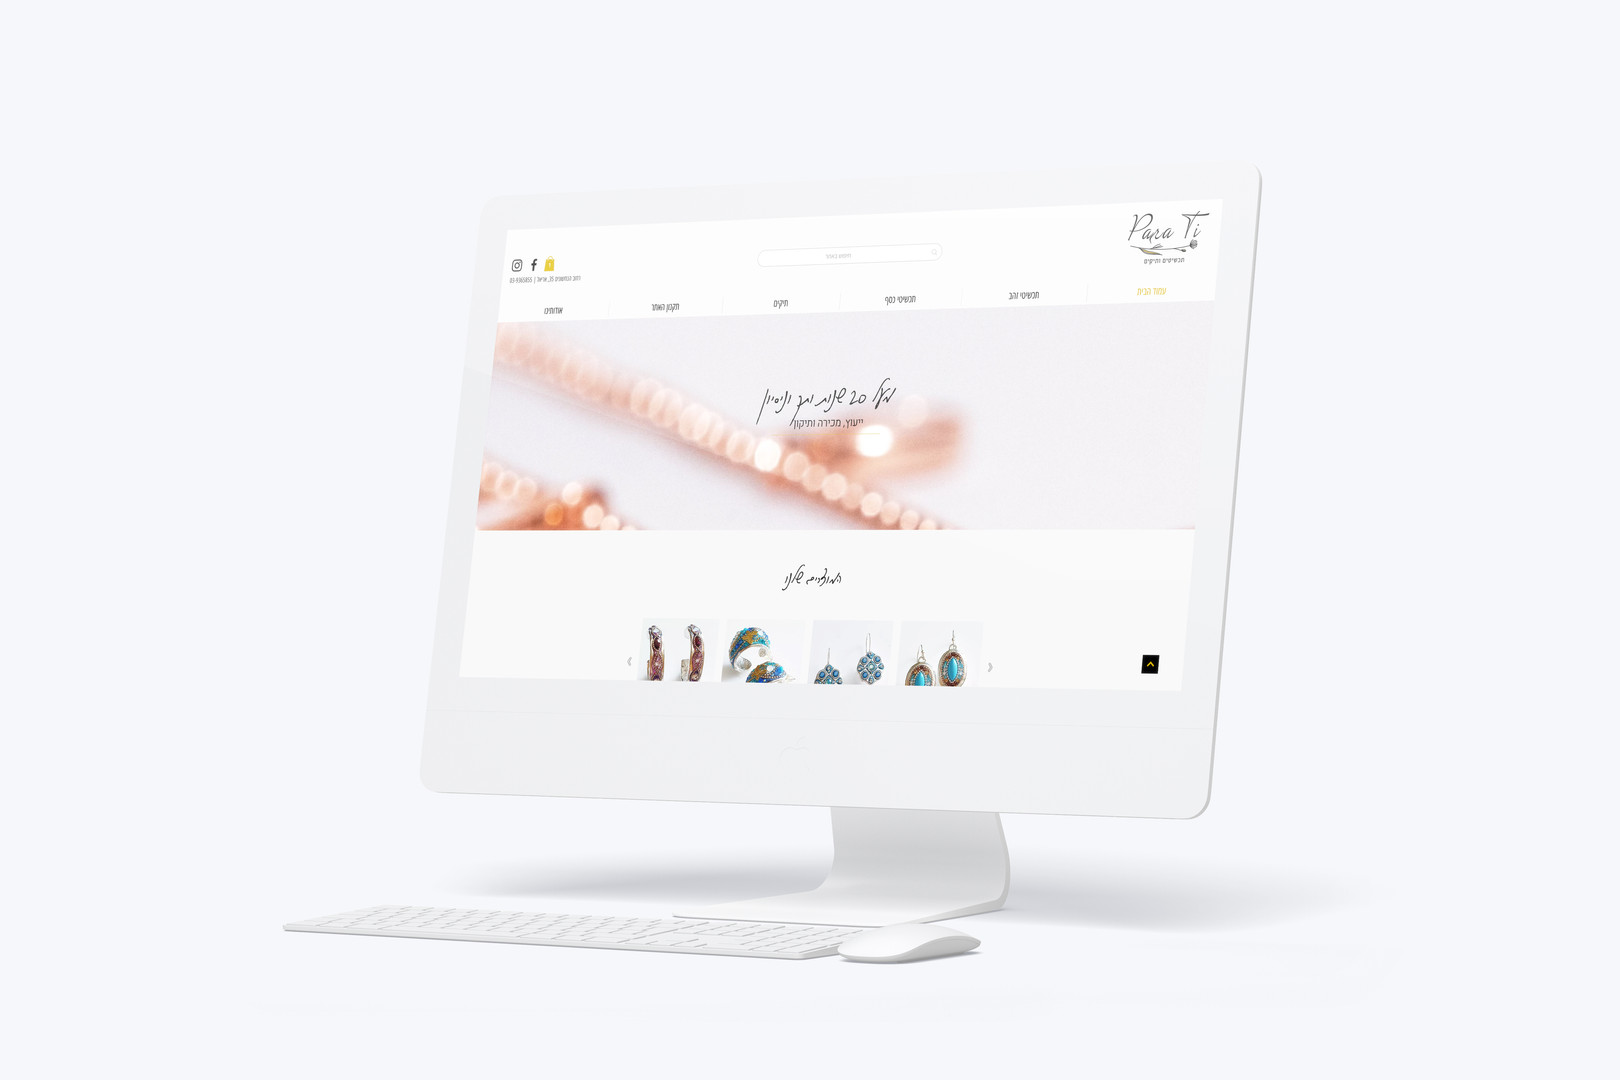 clay-imac-27-mockup-right-view-Recovered